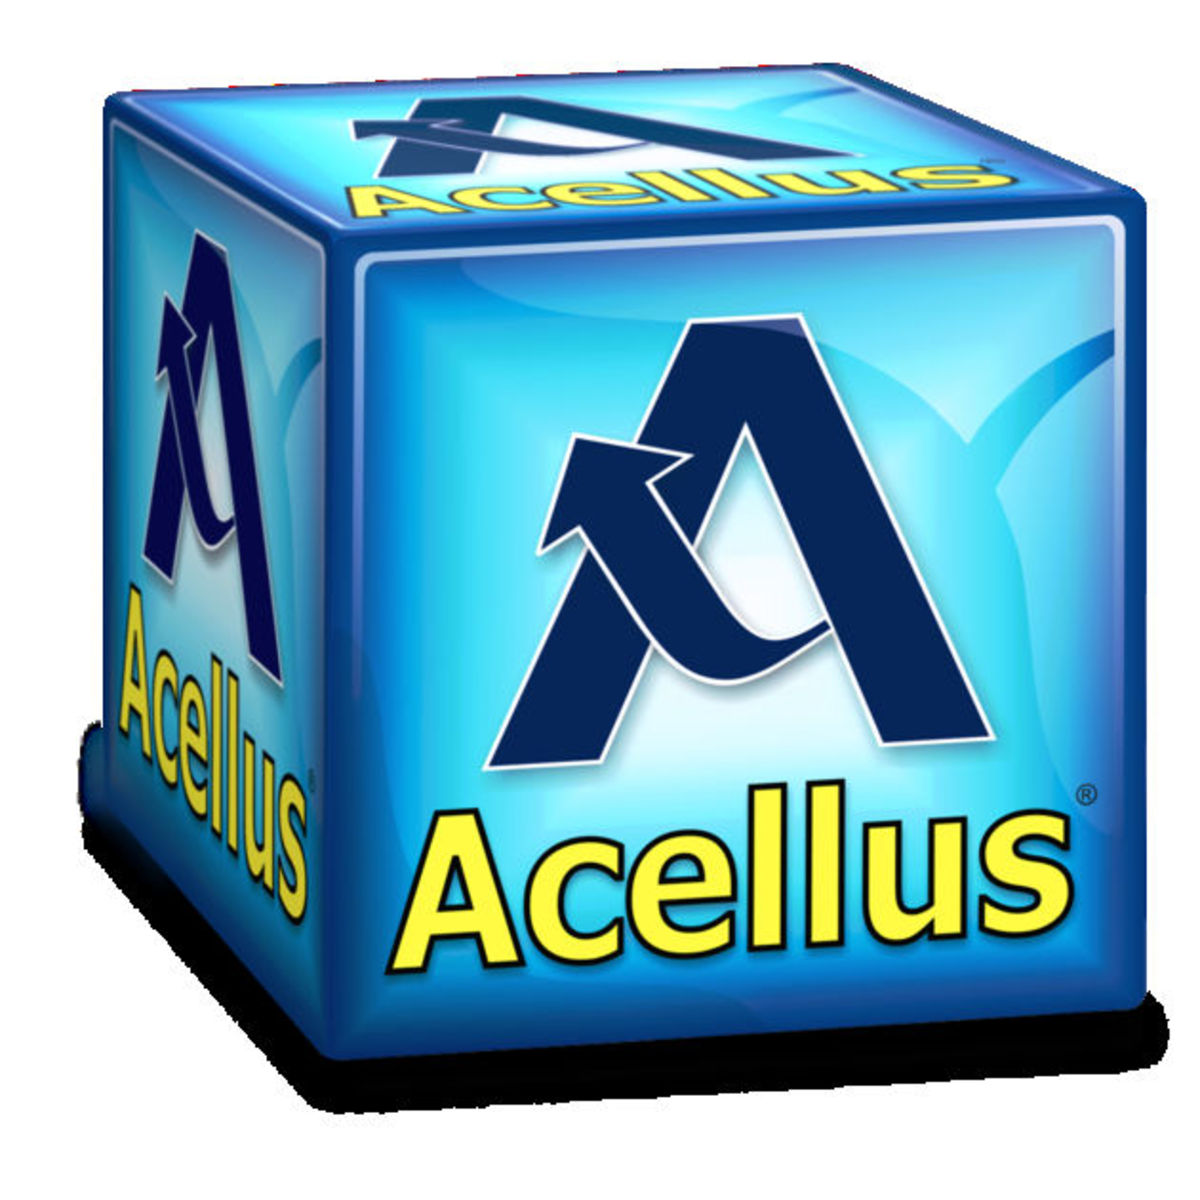 Is Acellus Power Homeschool Accredited? | HubPages